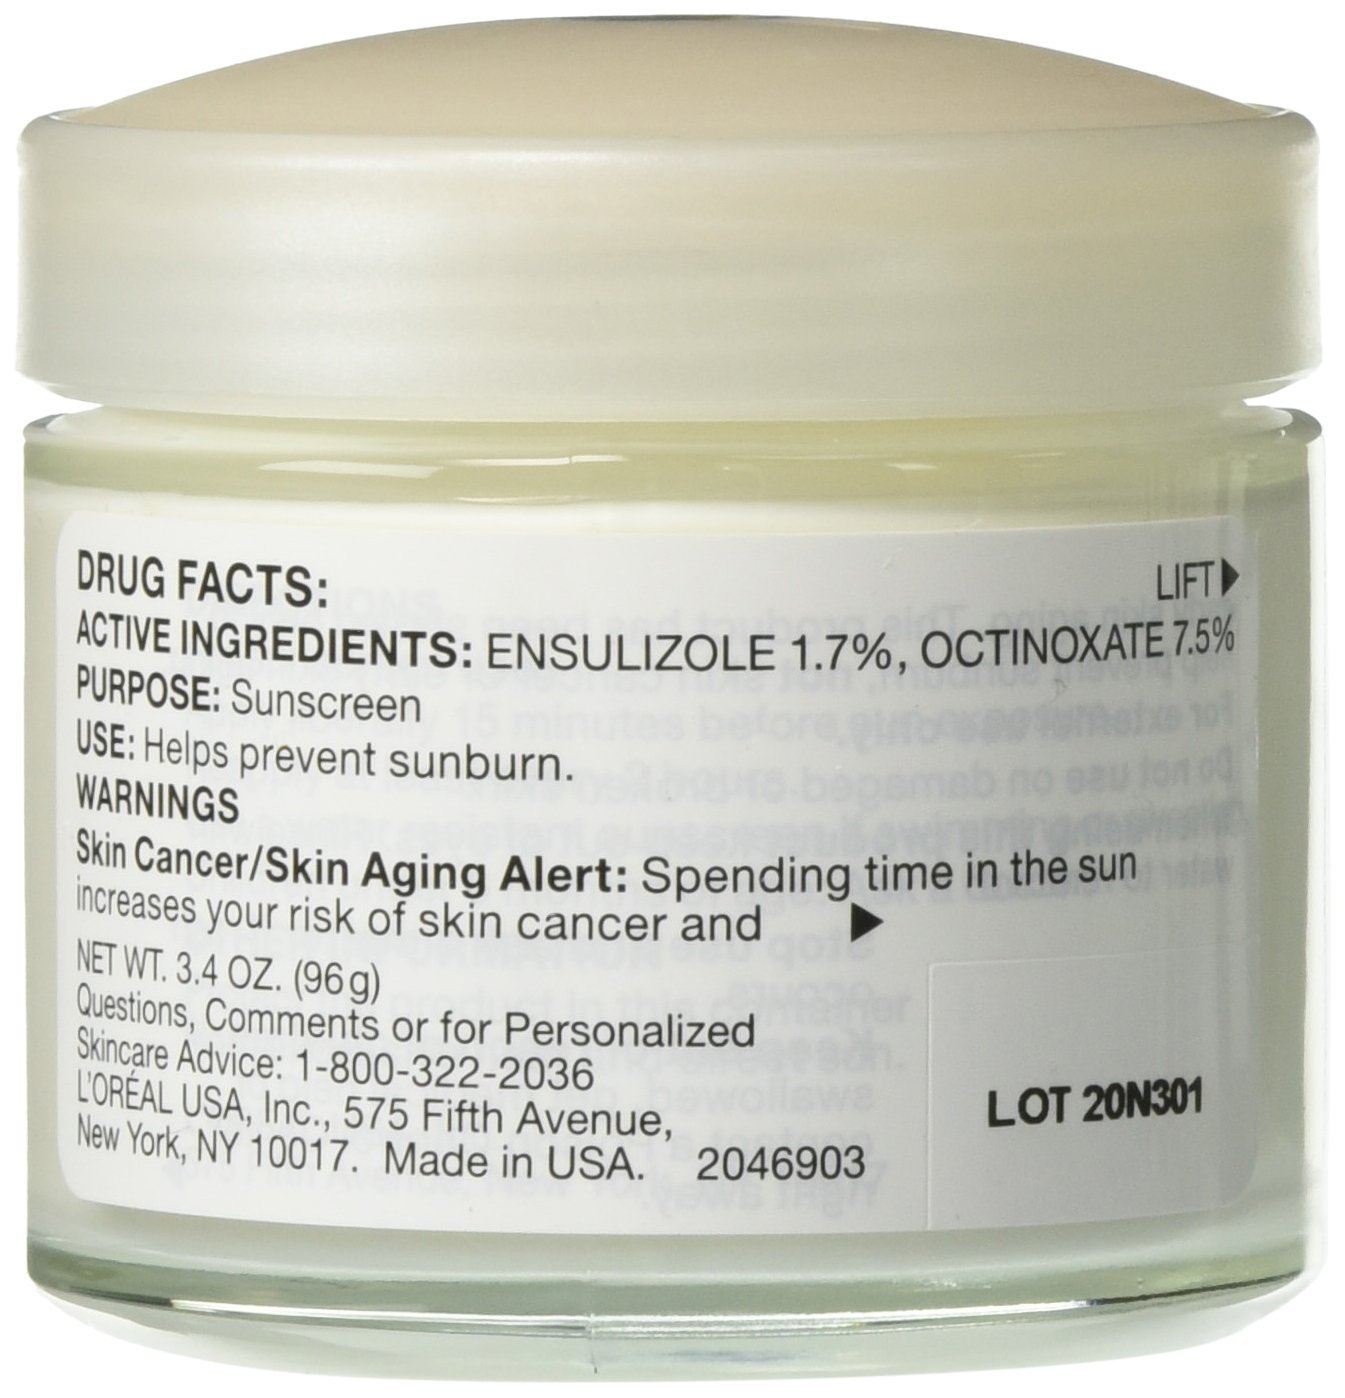 L'Oréal Paris Age Perfect Day Face Moisturizer SPF 15 to Firm Skin and Even Skin Tone, 3.4 fl. oz.